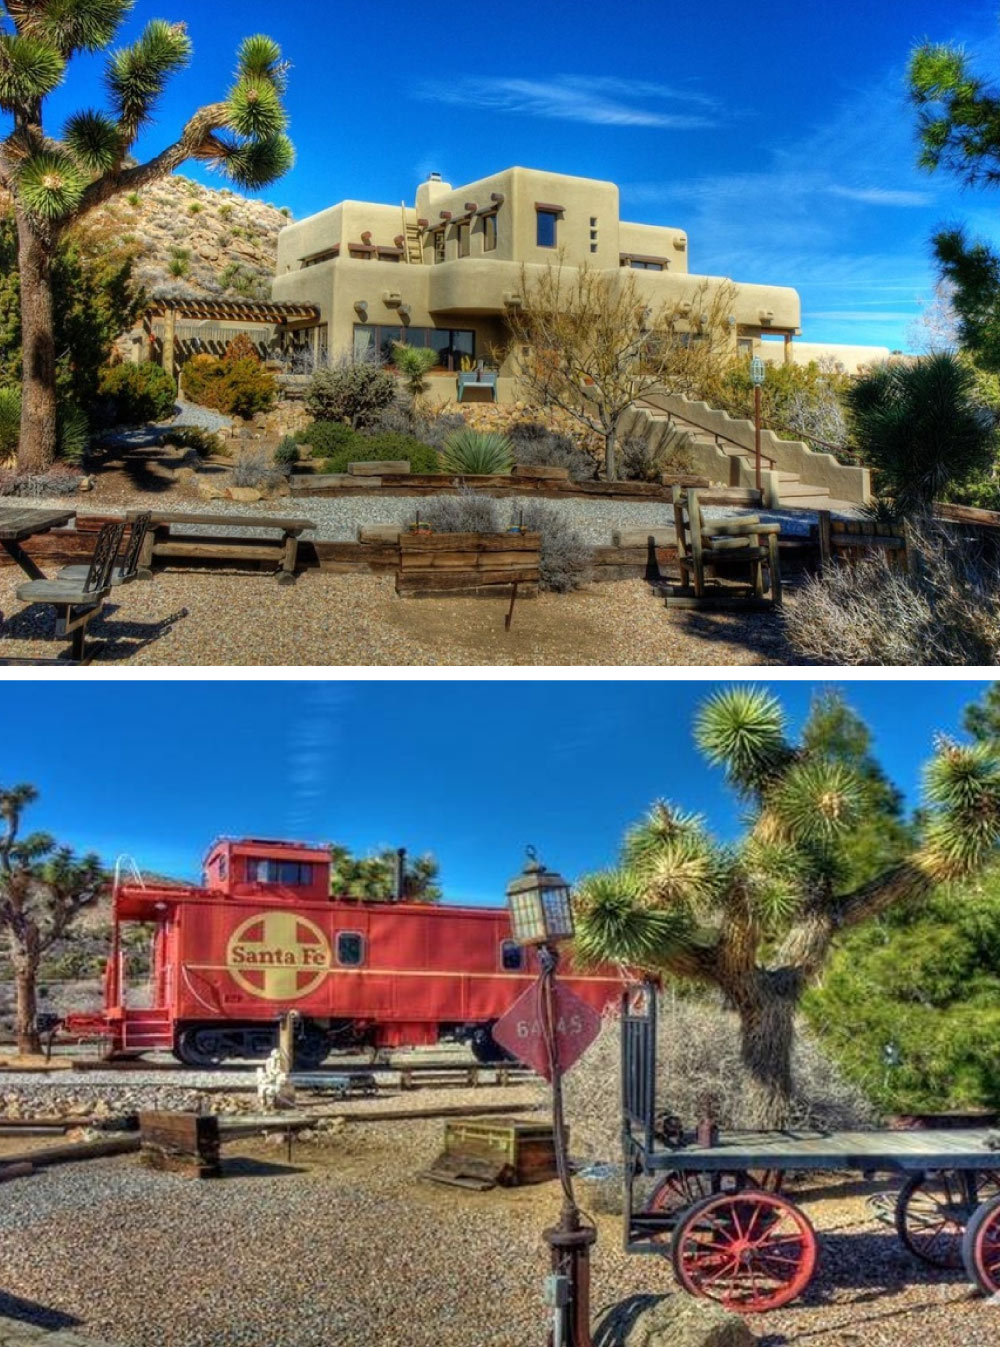 8 Homes With Converted Train Cars For Sale – Life at Home